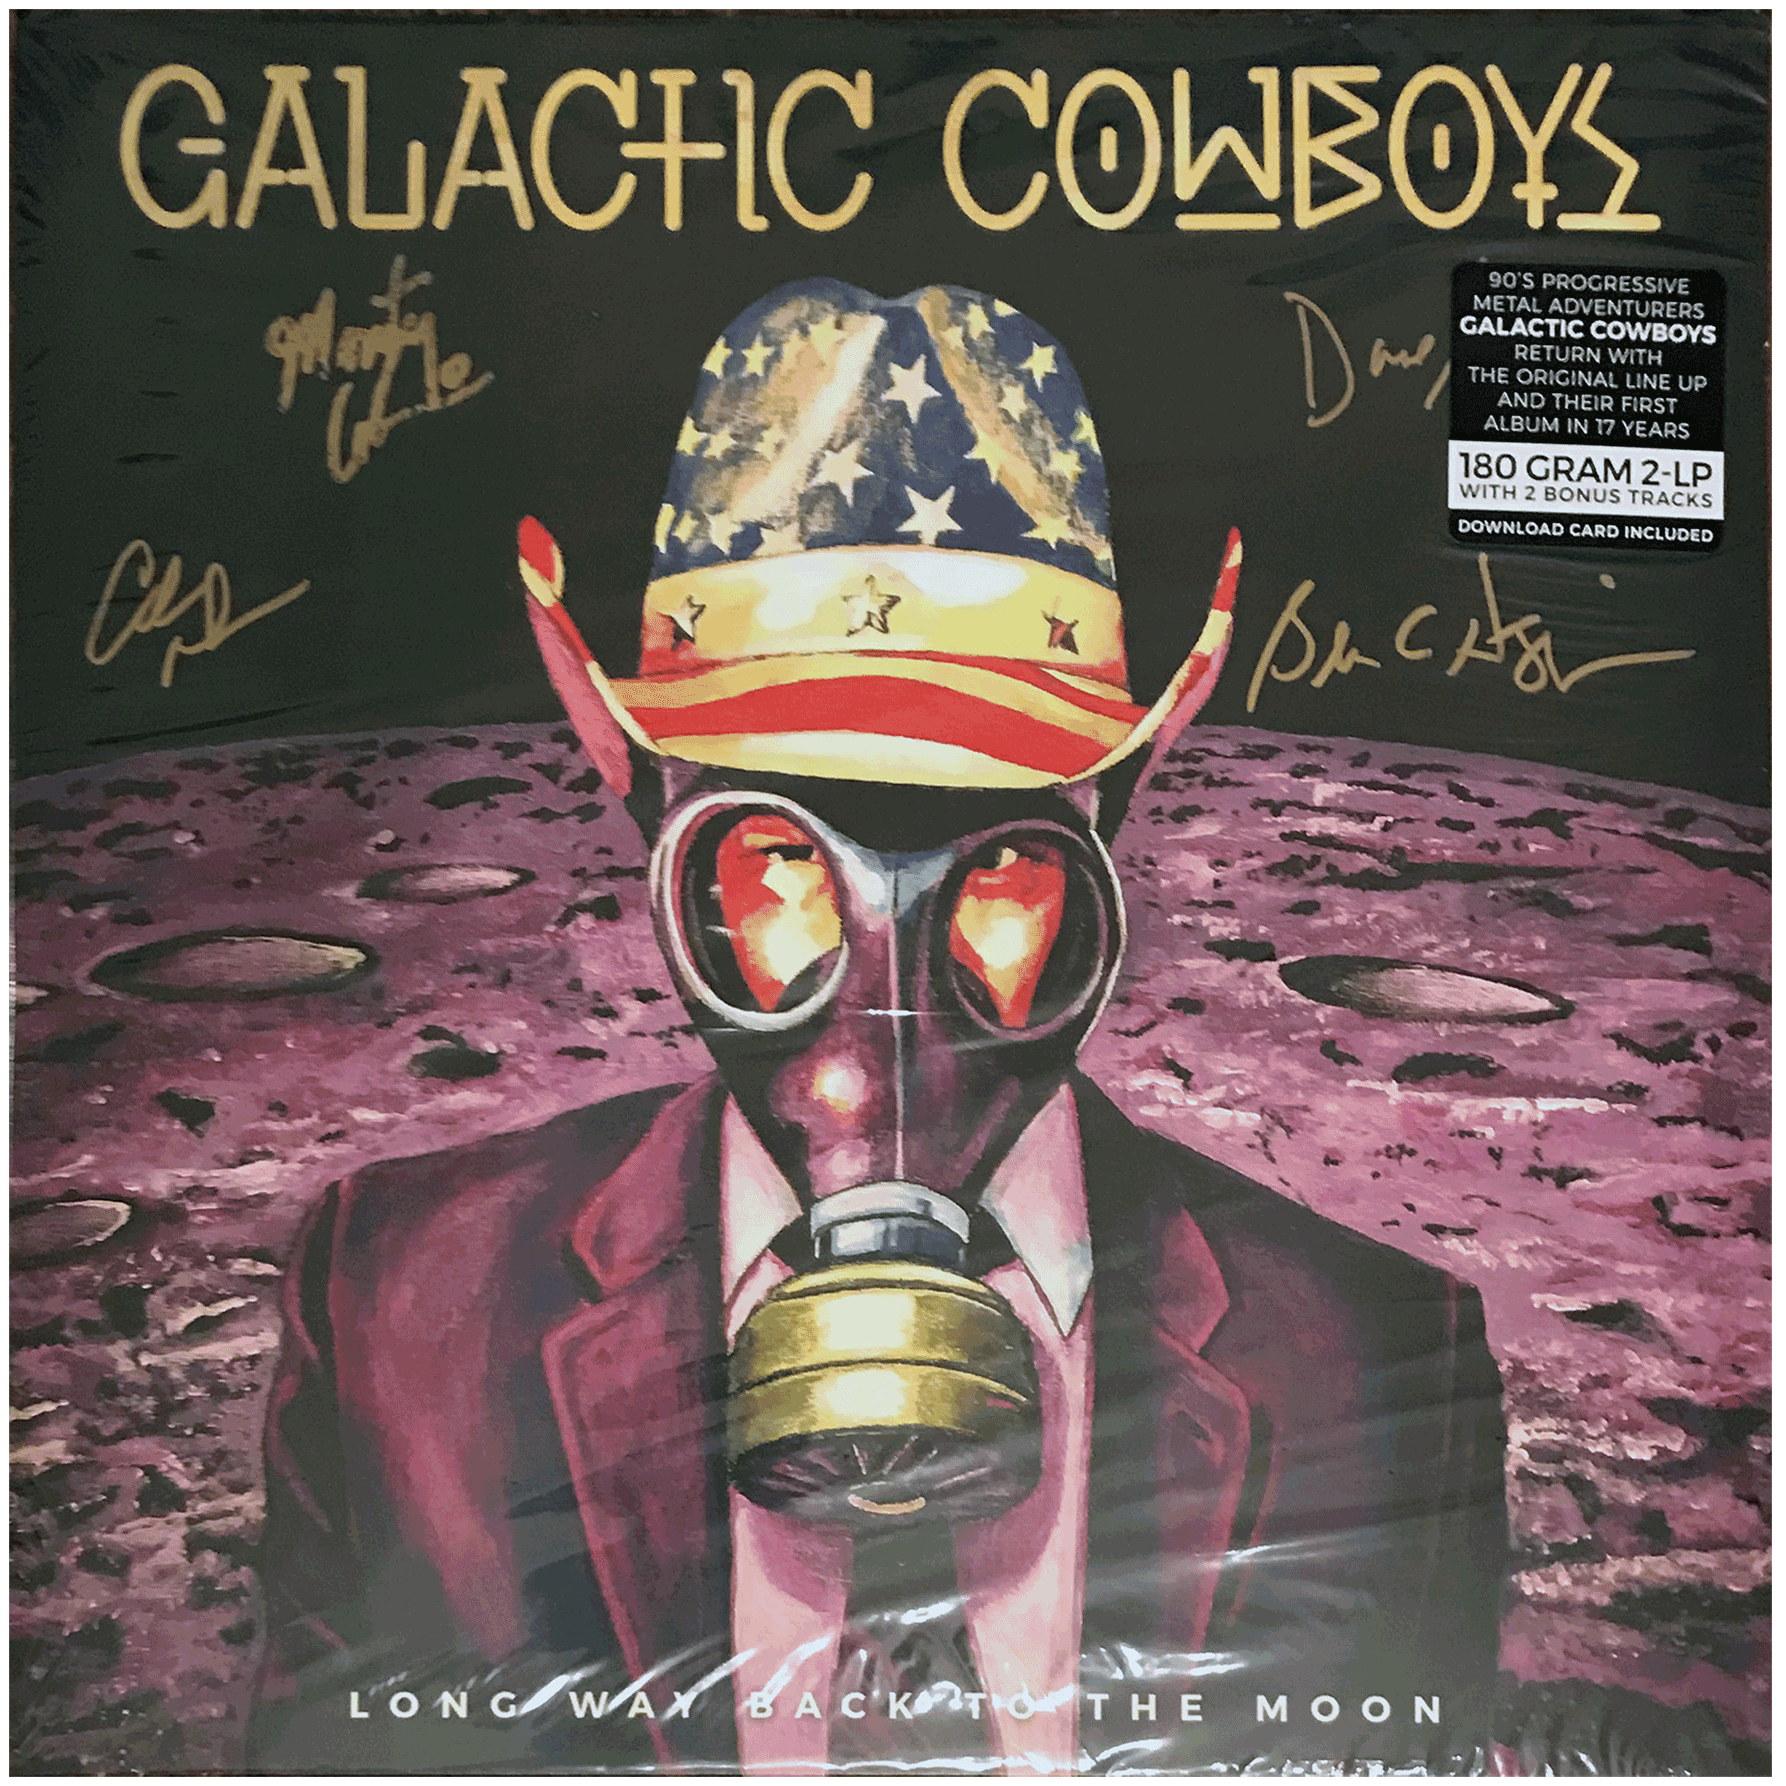 Long Way Back To The Moon - Autographed LP